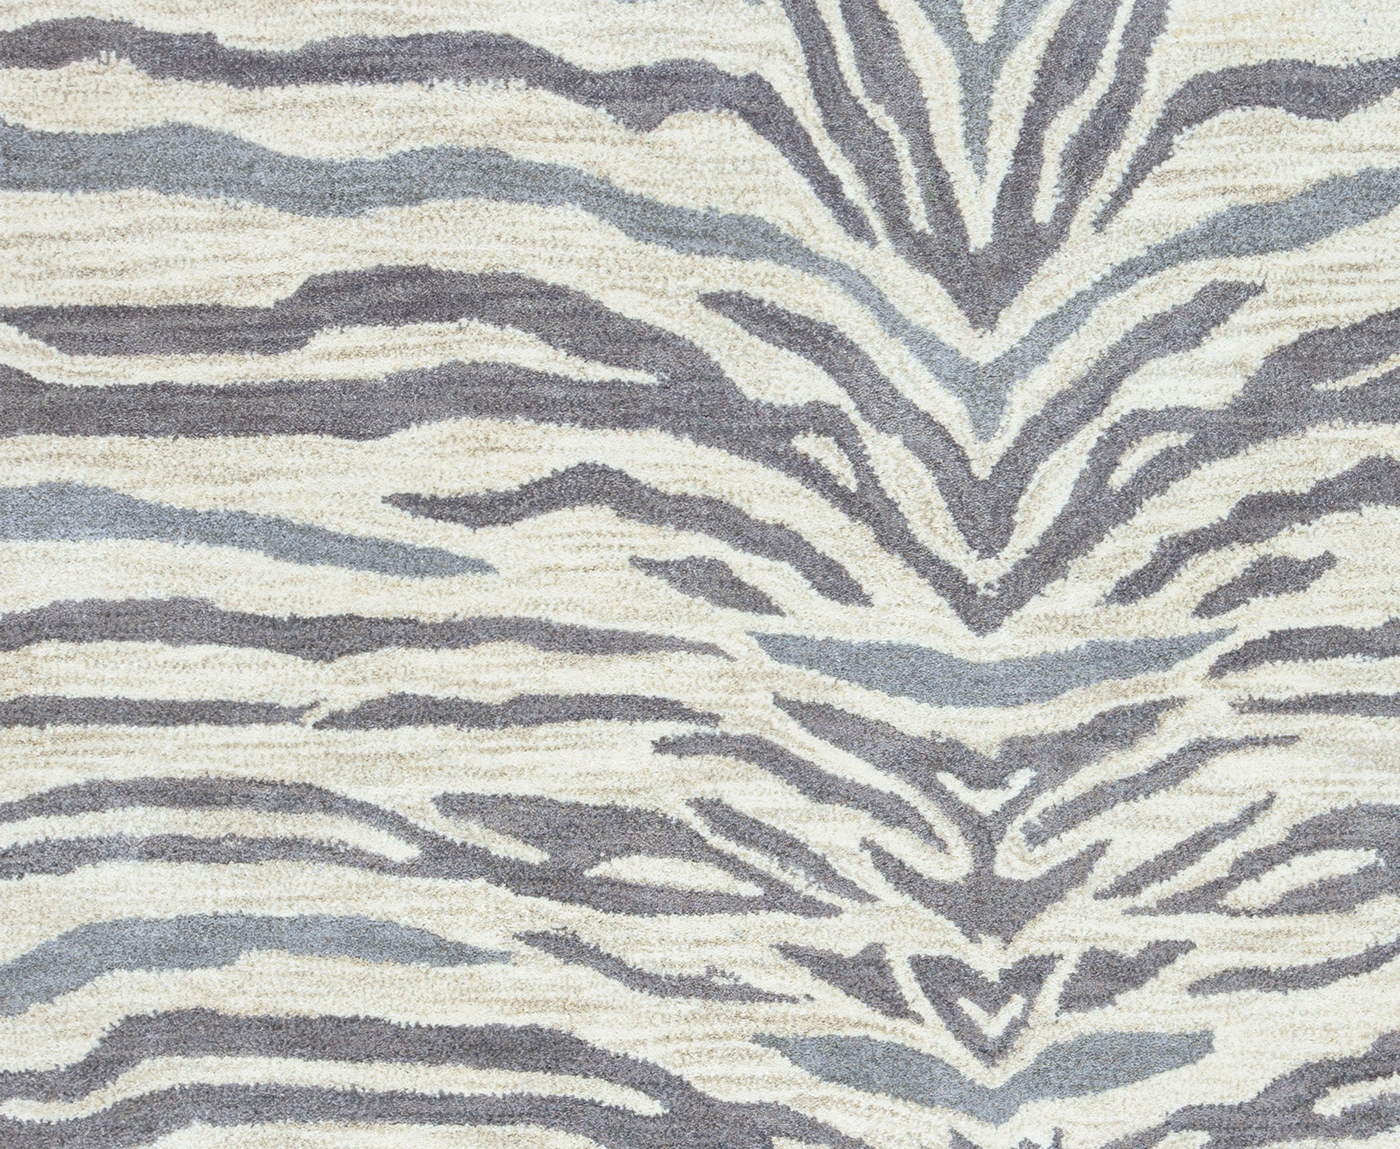 Valintino Abstract Zebra Wool Area Rug In Light Gray